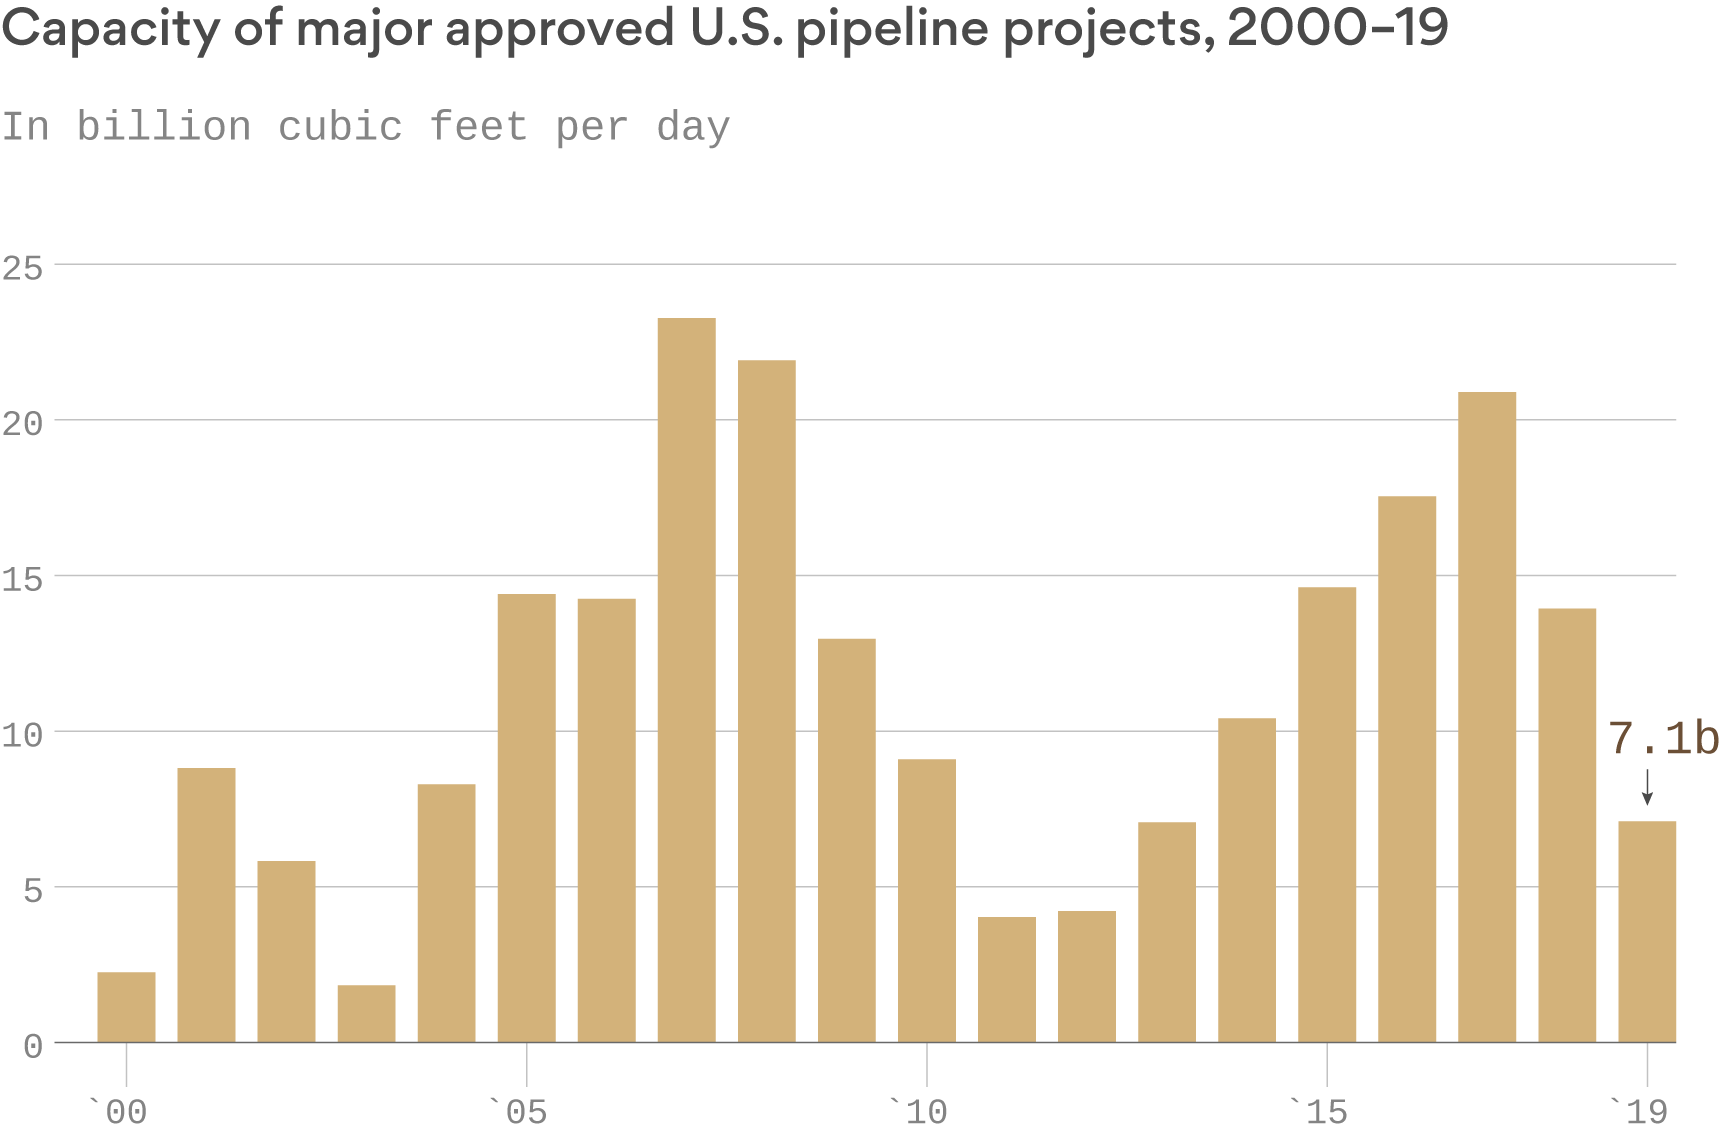 Growing opposition to natural gas pipelines hasn't hurt federal approvals